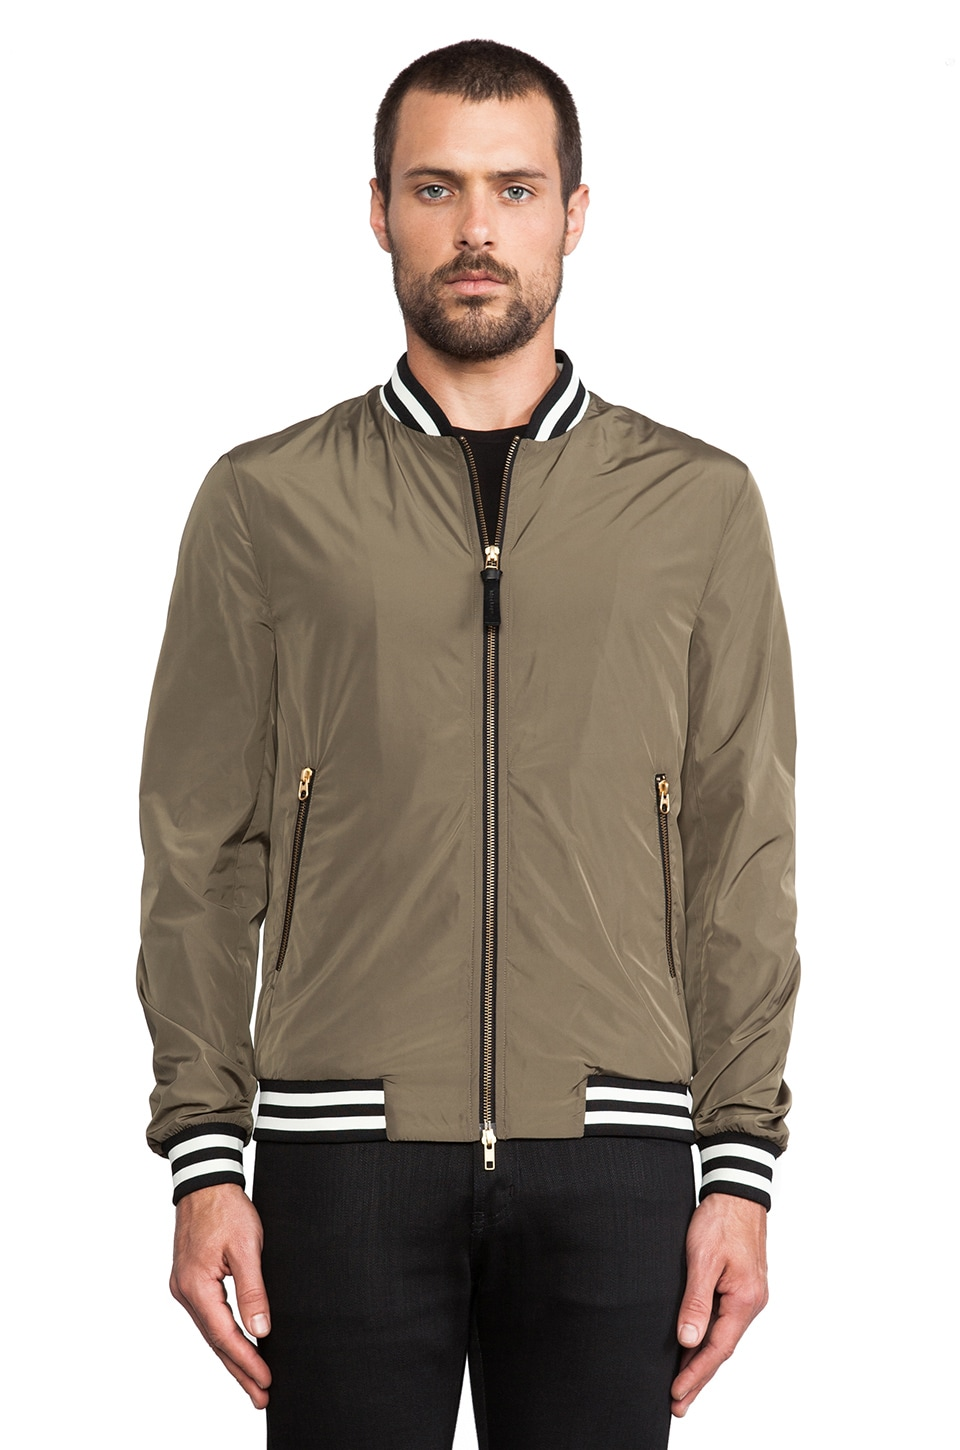 Mackage Eugene Rainwear Bomber in Khaki